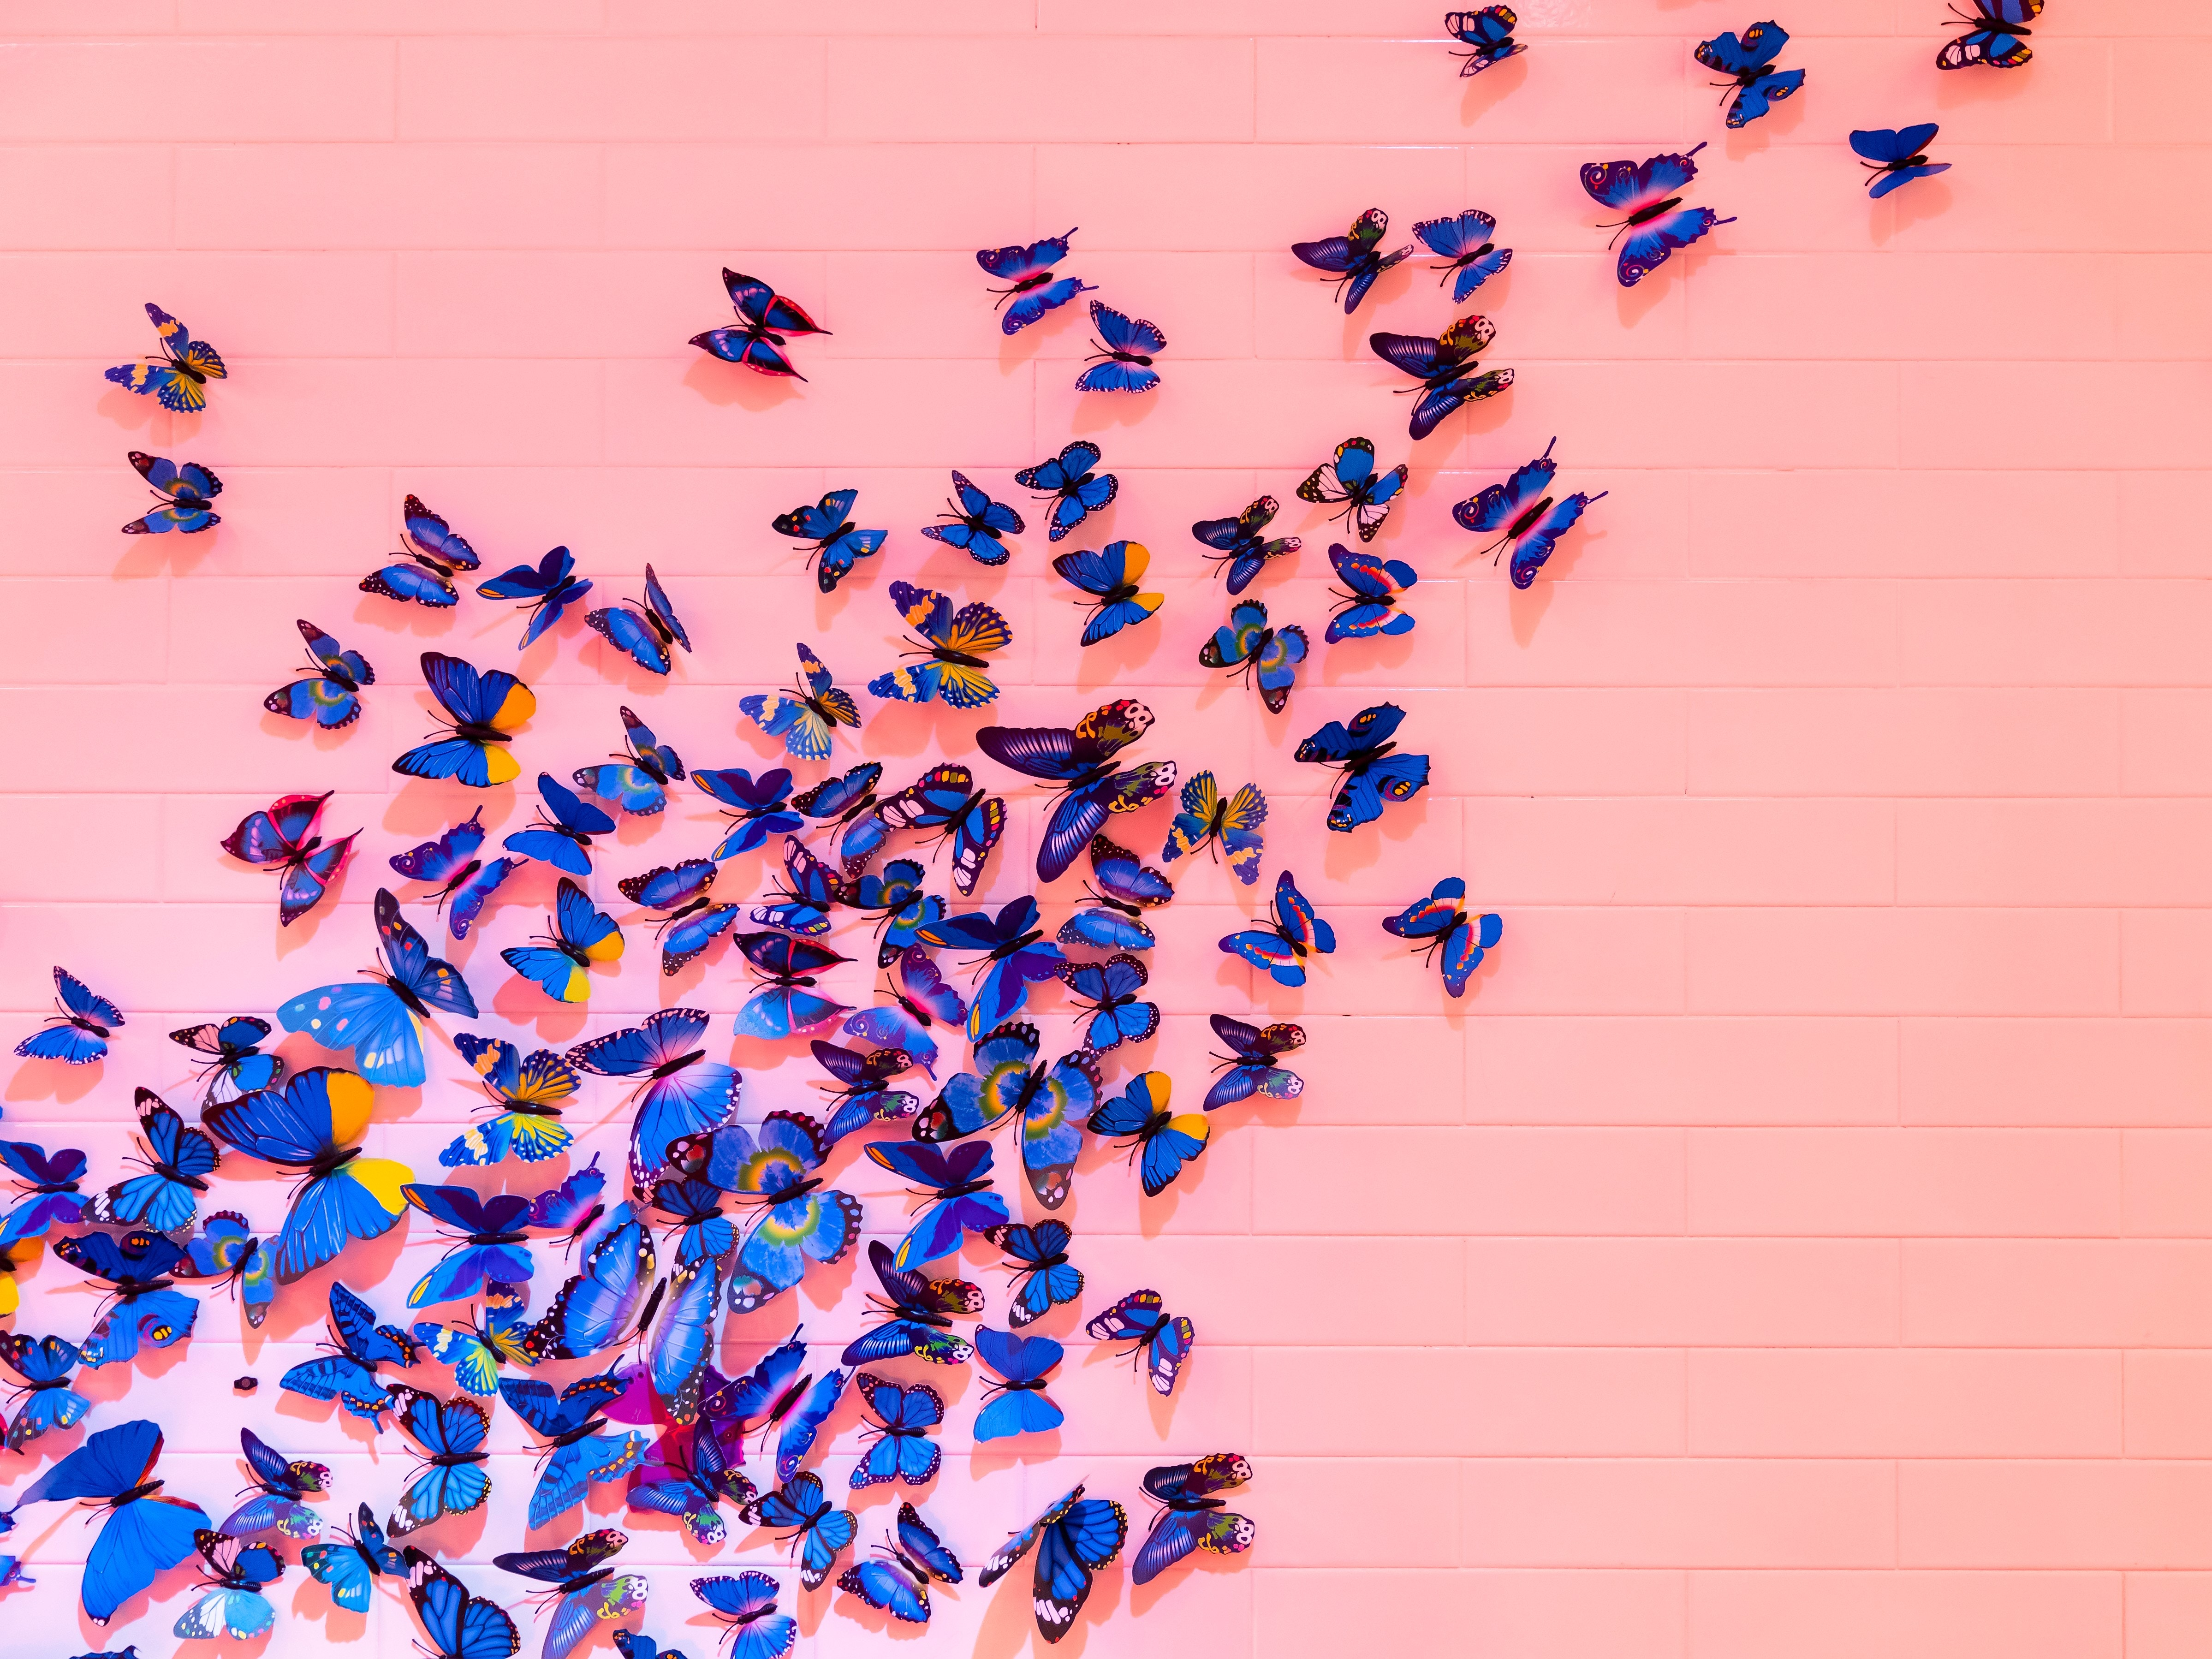 106899 download wallpaper Butterflies, Miscellanea, Miscellaneous, Registration, Typography, Wall, Decoration screensavers and pictures for free